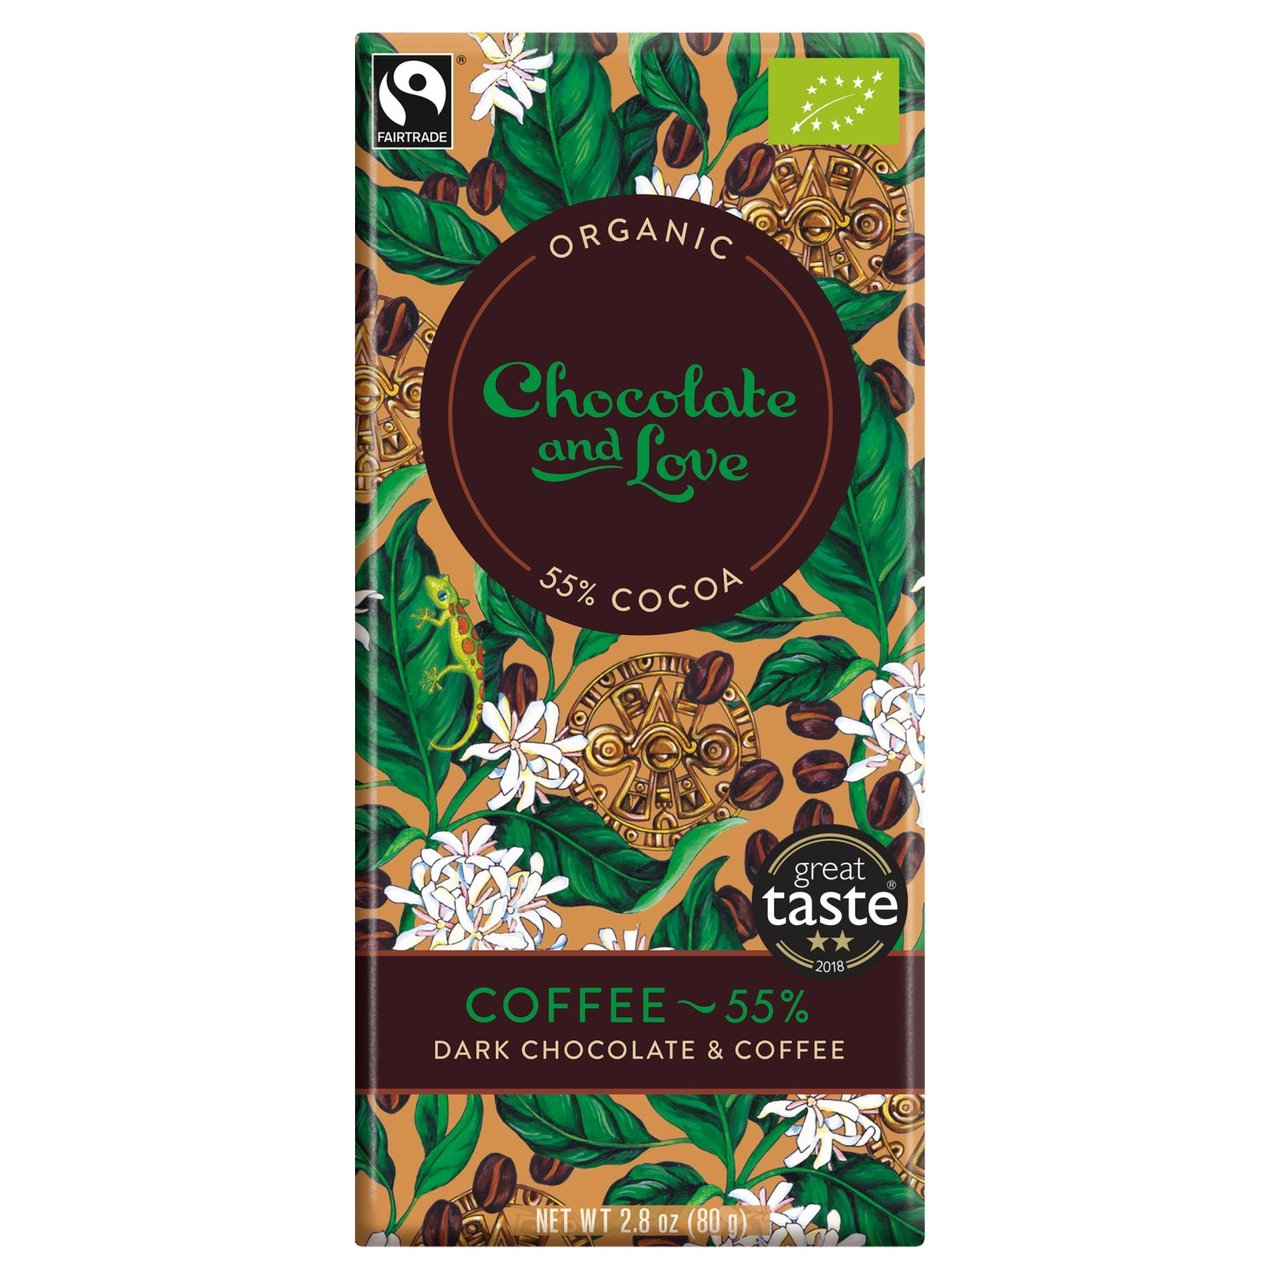 Coffee Chocolate & Love Organic Fairtrade Chocolate Bar